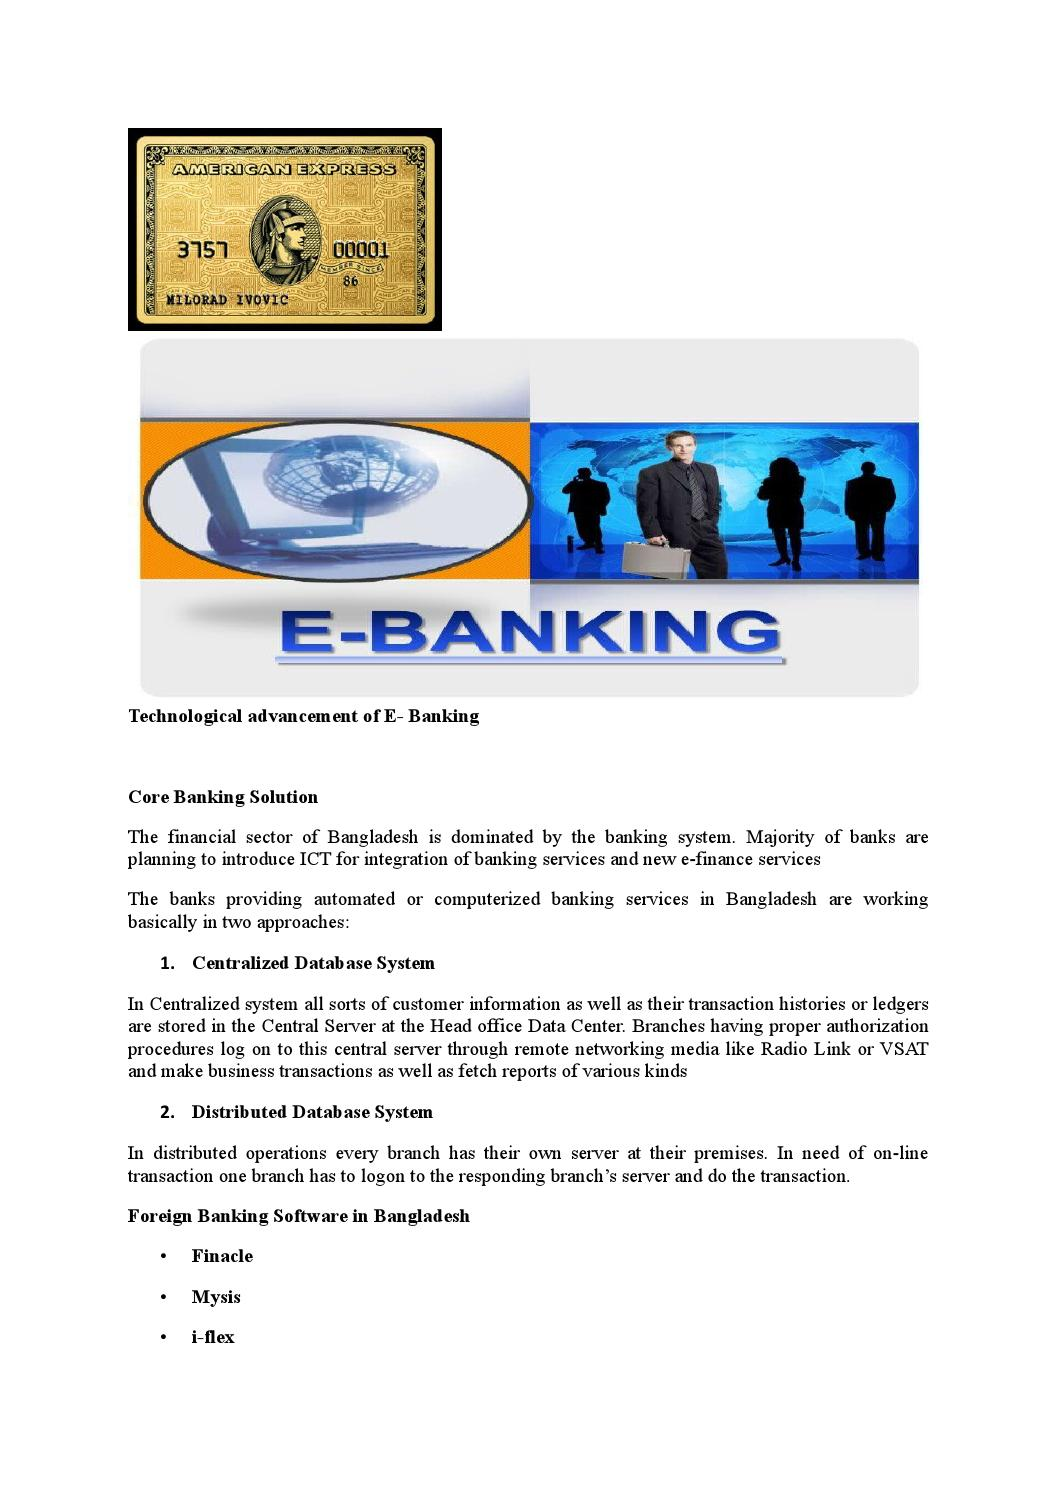 Technological advancement of e banking by Md Papon - issuu